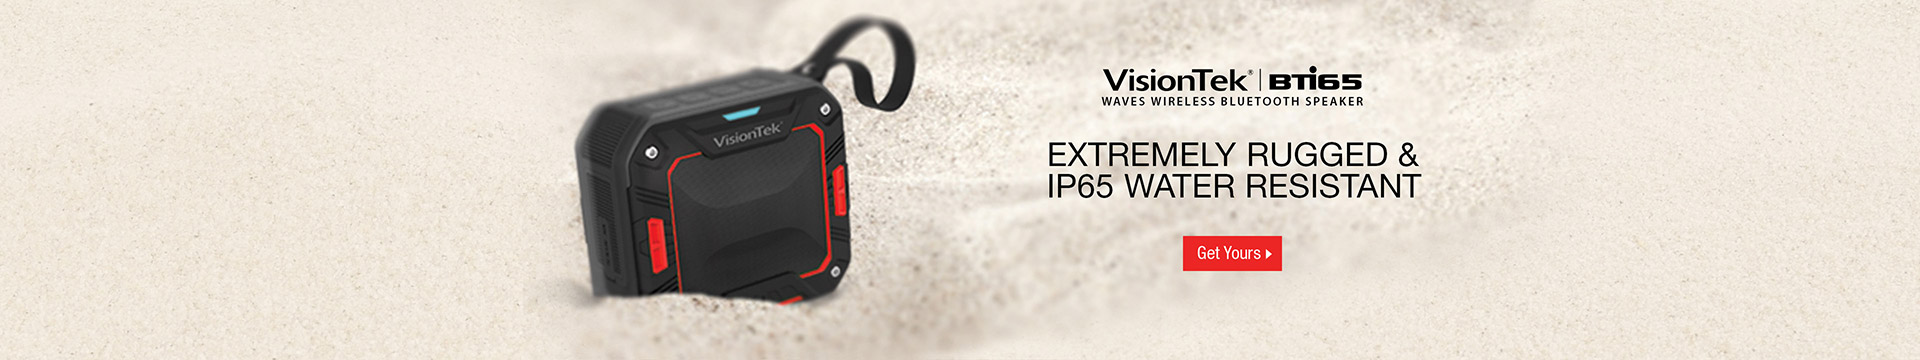 Extremely rugged & IP65 water resistant